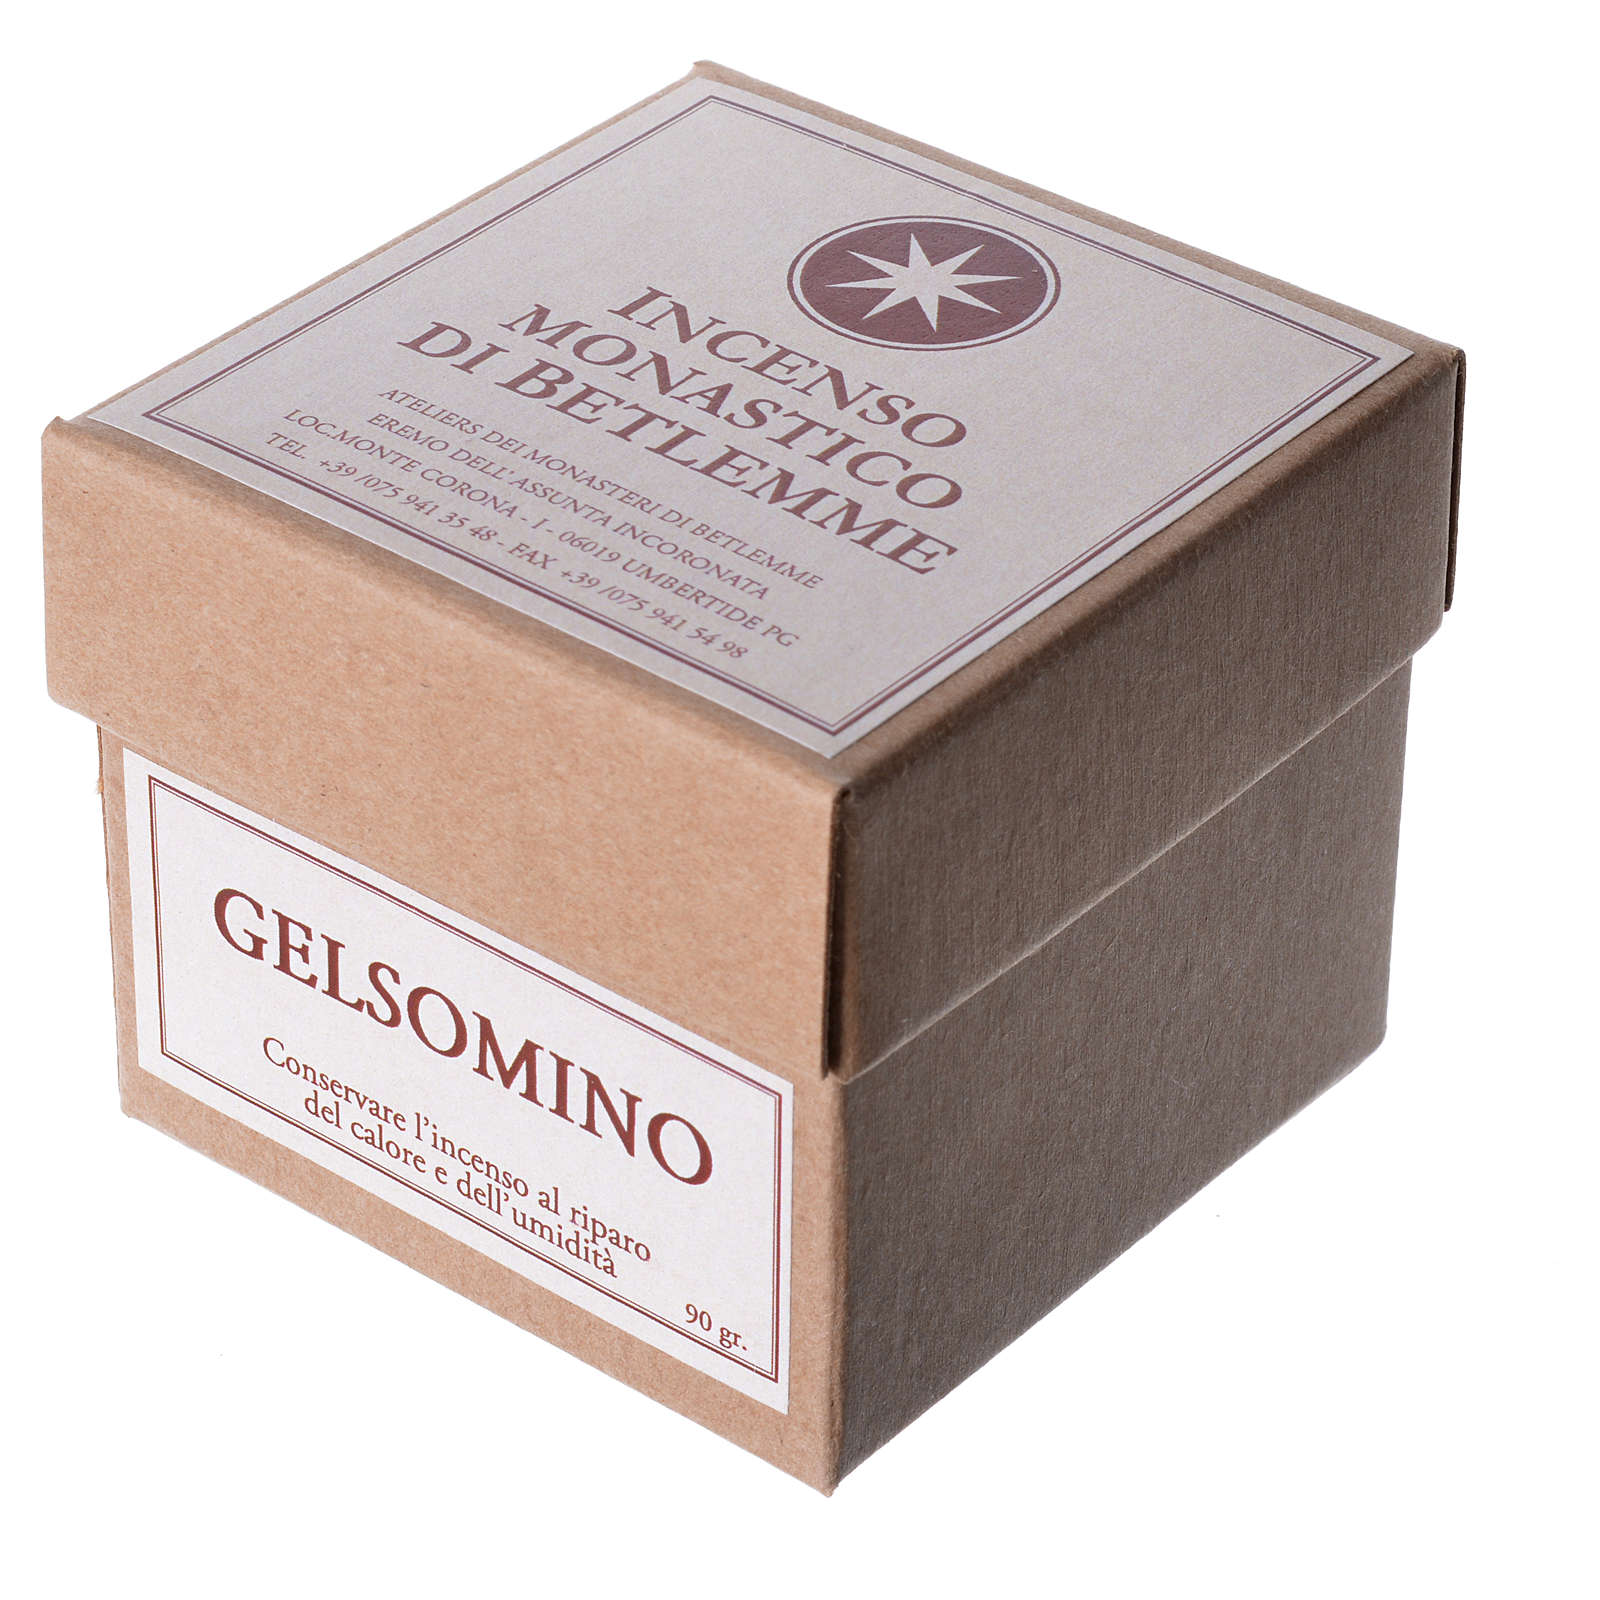 Incenso gelsomino Monaci di Betlemme 90 gr 3